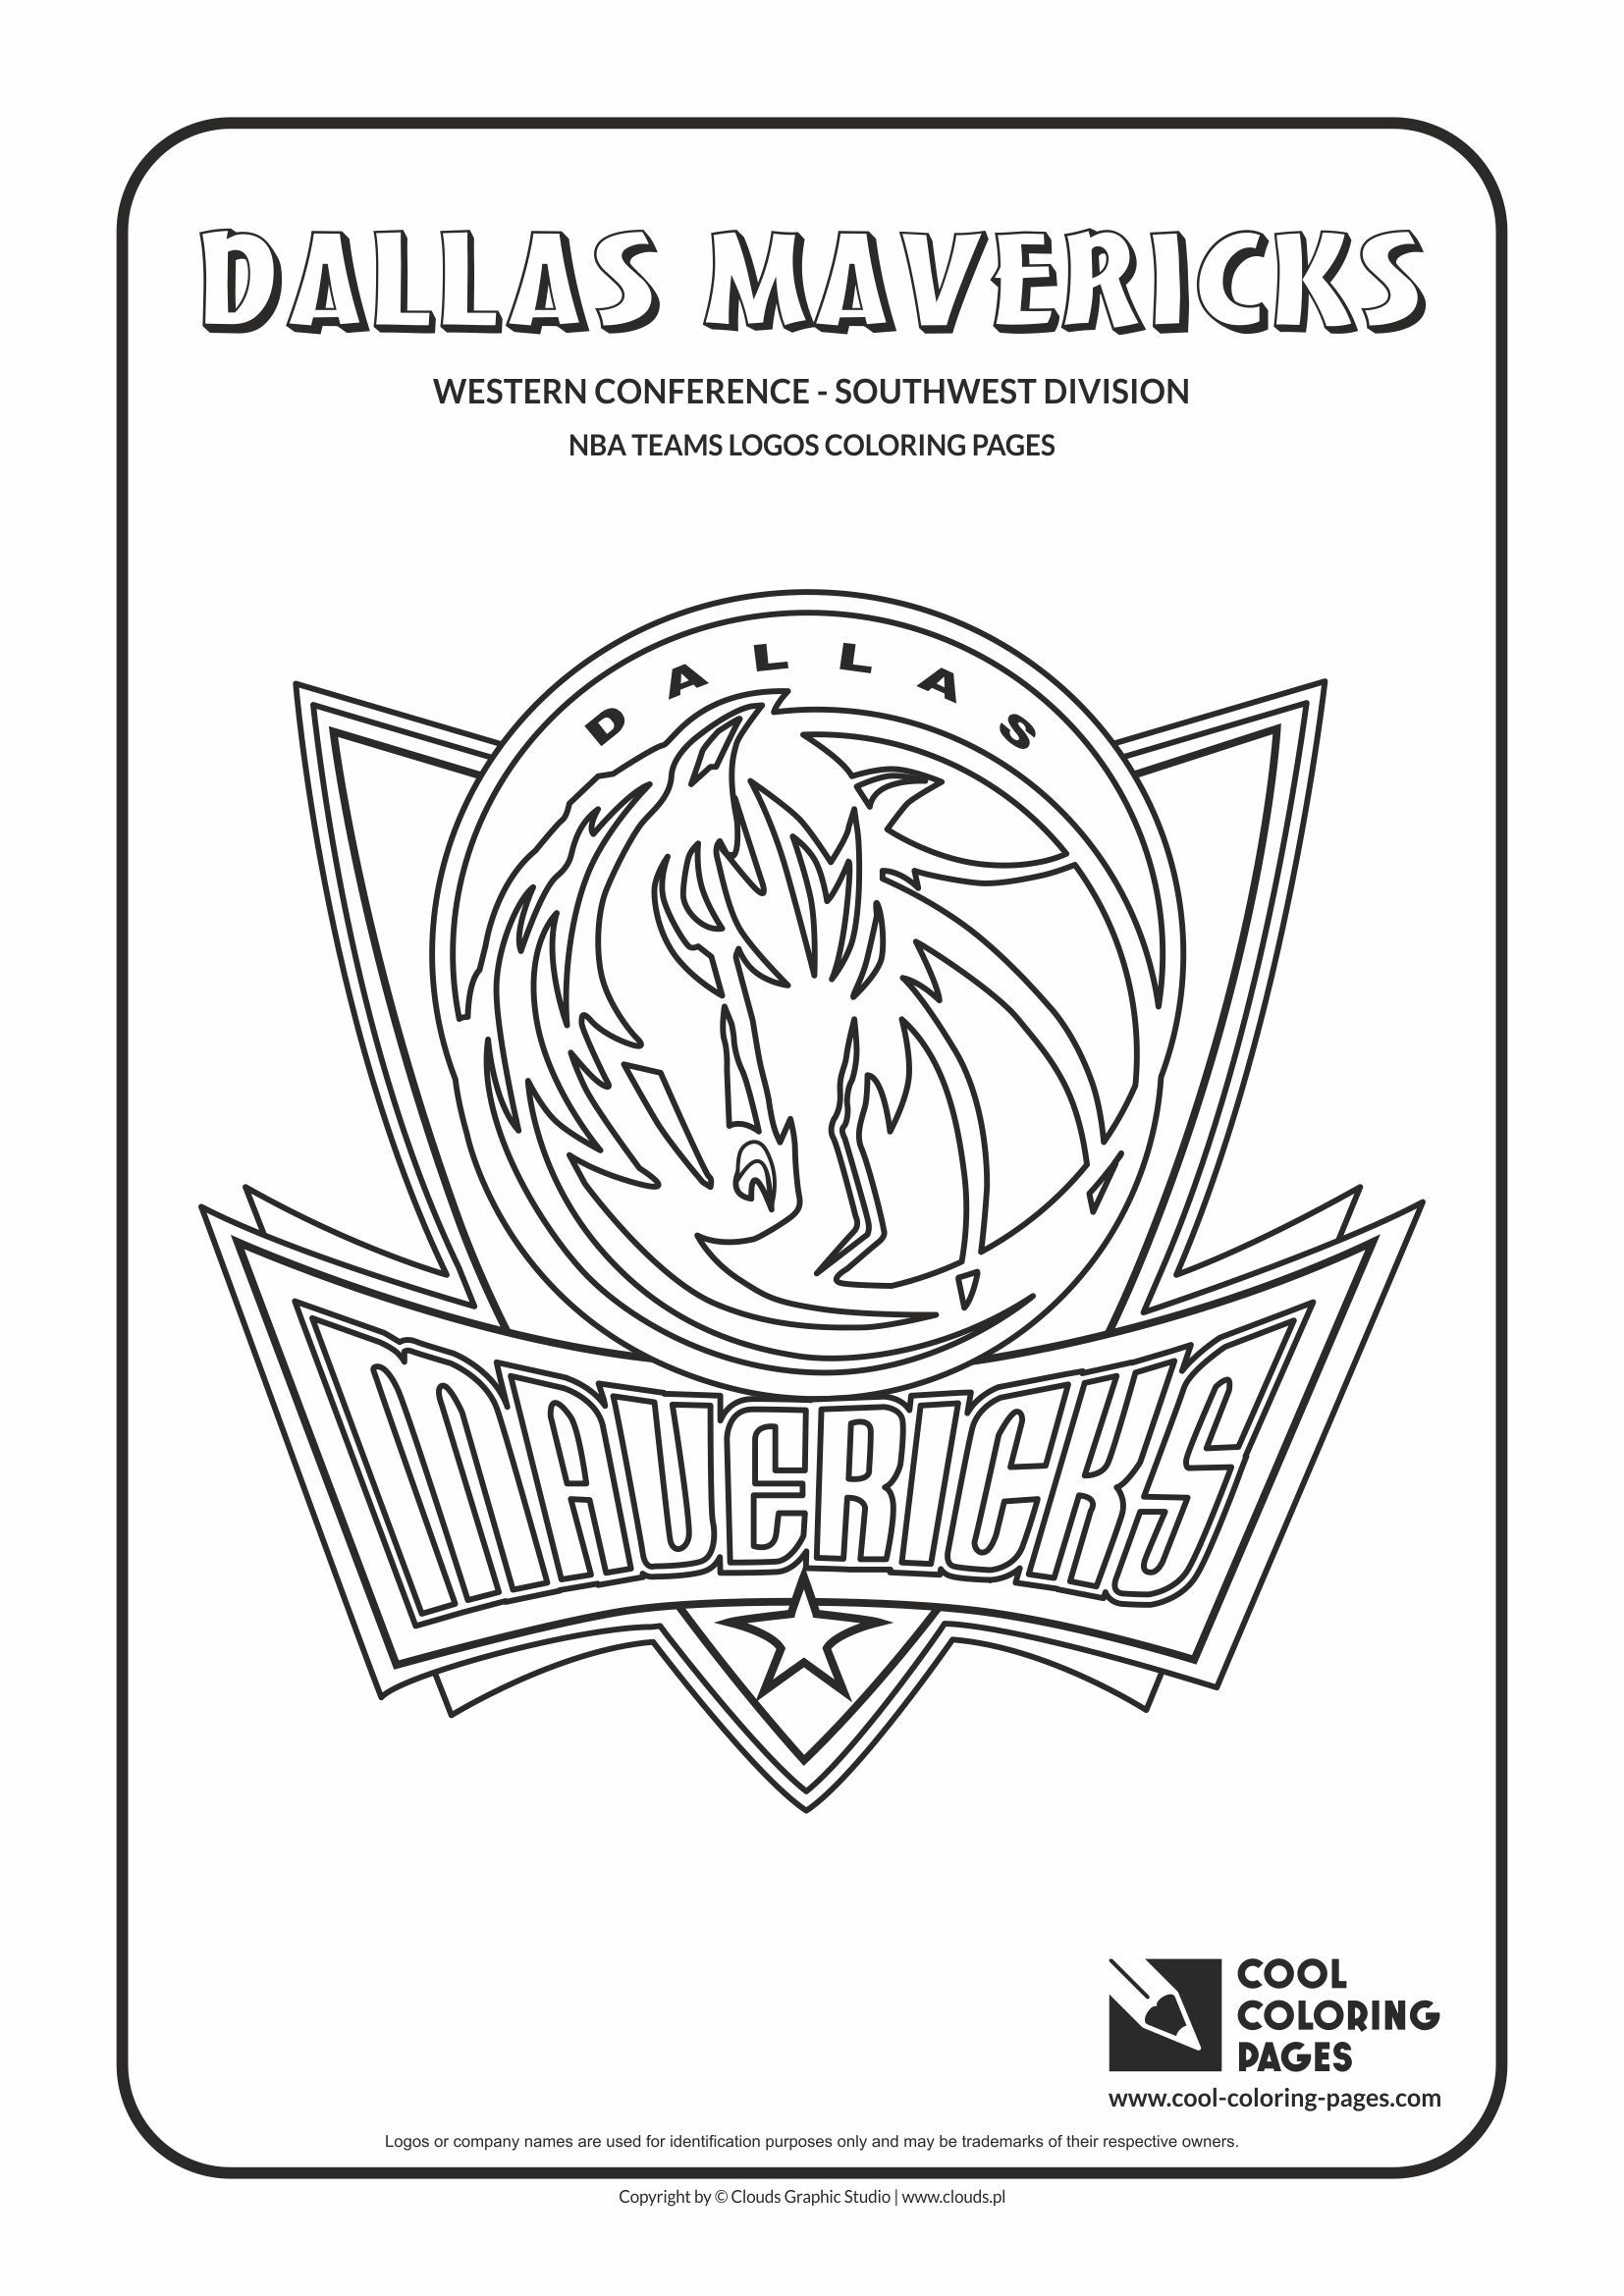 Dallas Mavericks - NBA basketball teams logos coloring pages